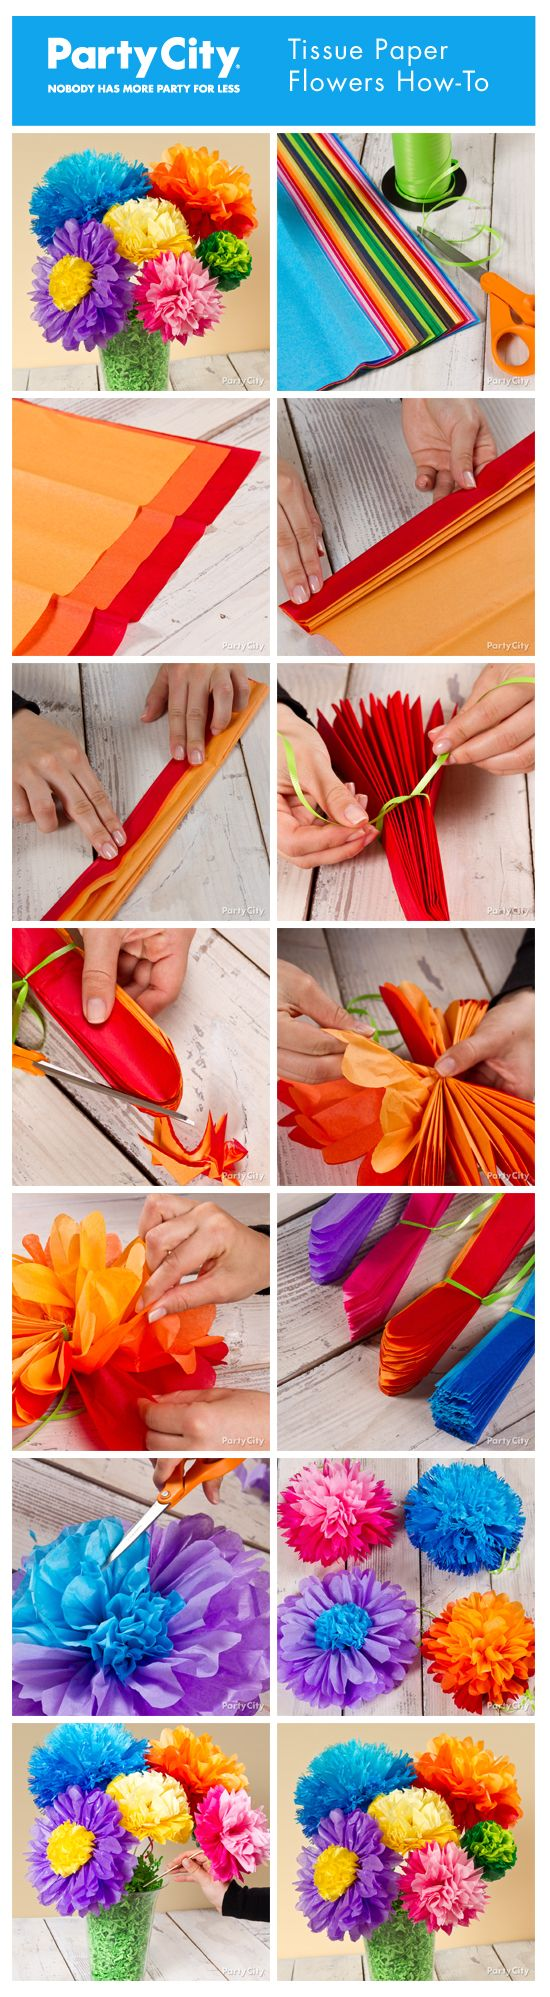 How To Make Pretty Tissue Paper Flowers Stepbystep Photo Tutorial For